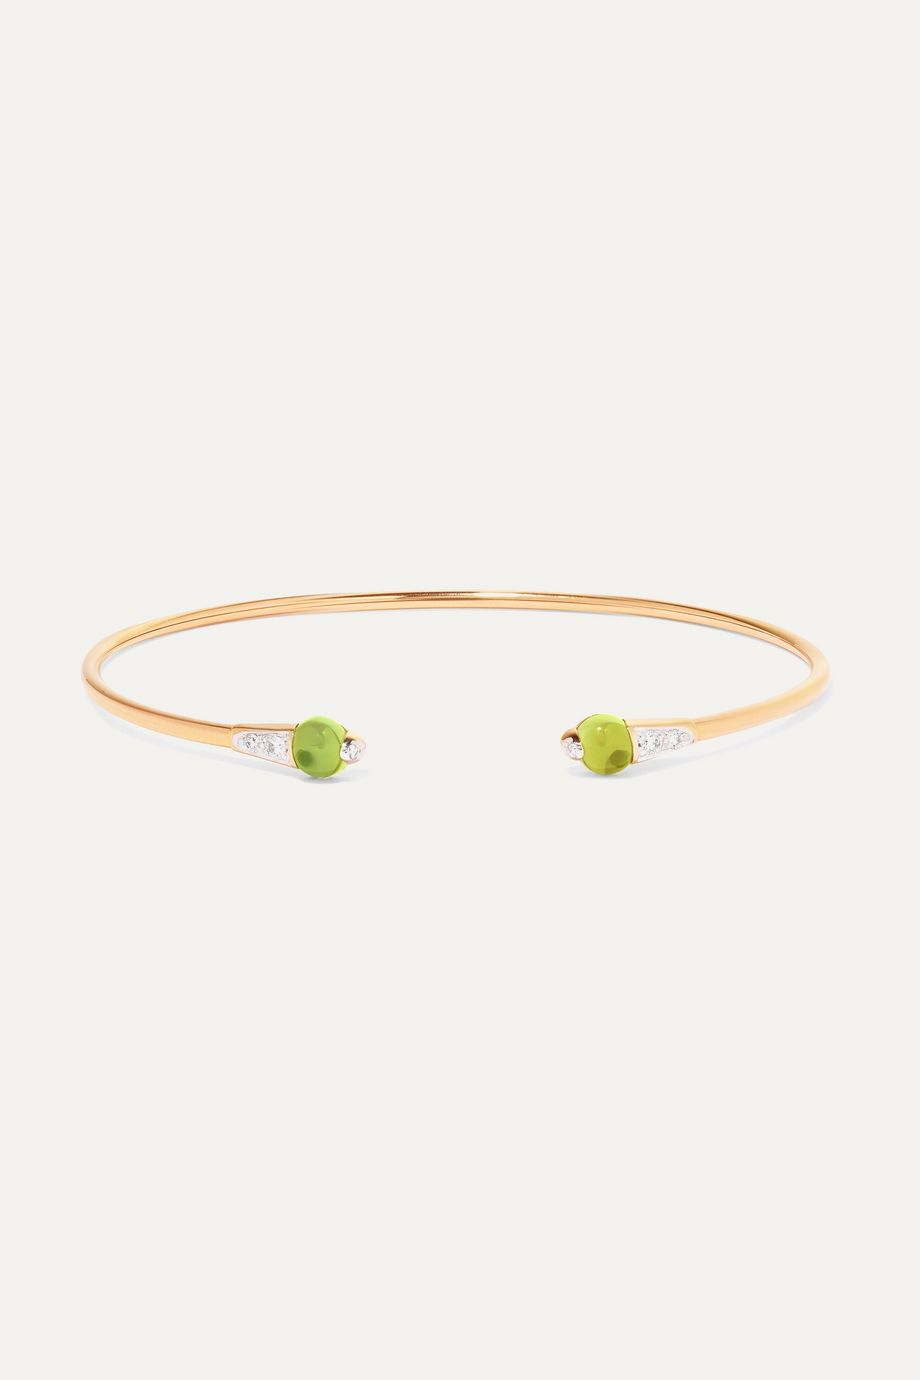 Pomellato 18-karat rose gold, peridot and diamond cuff